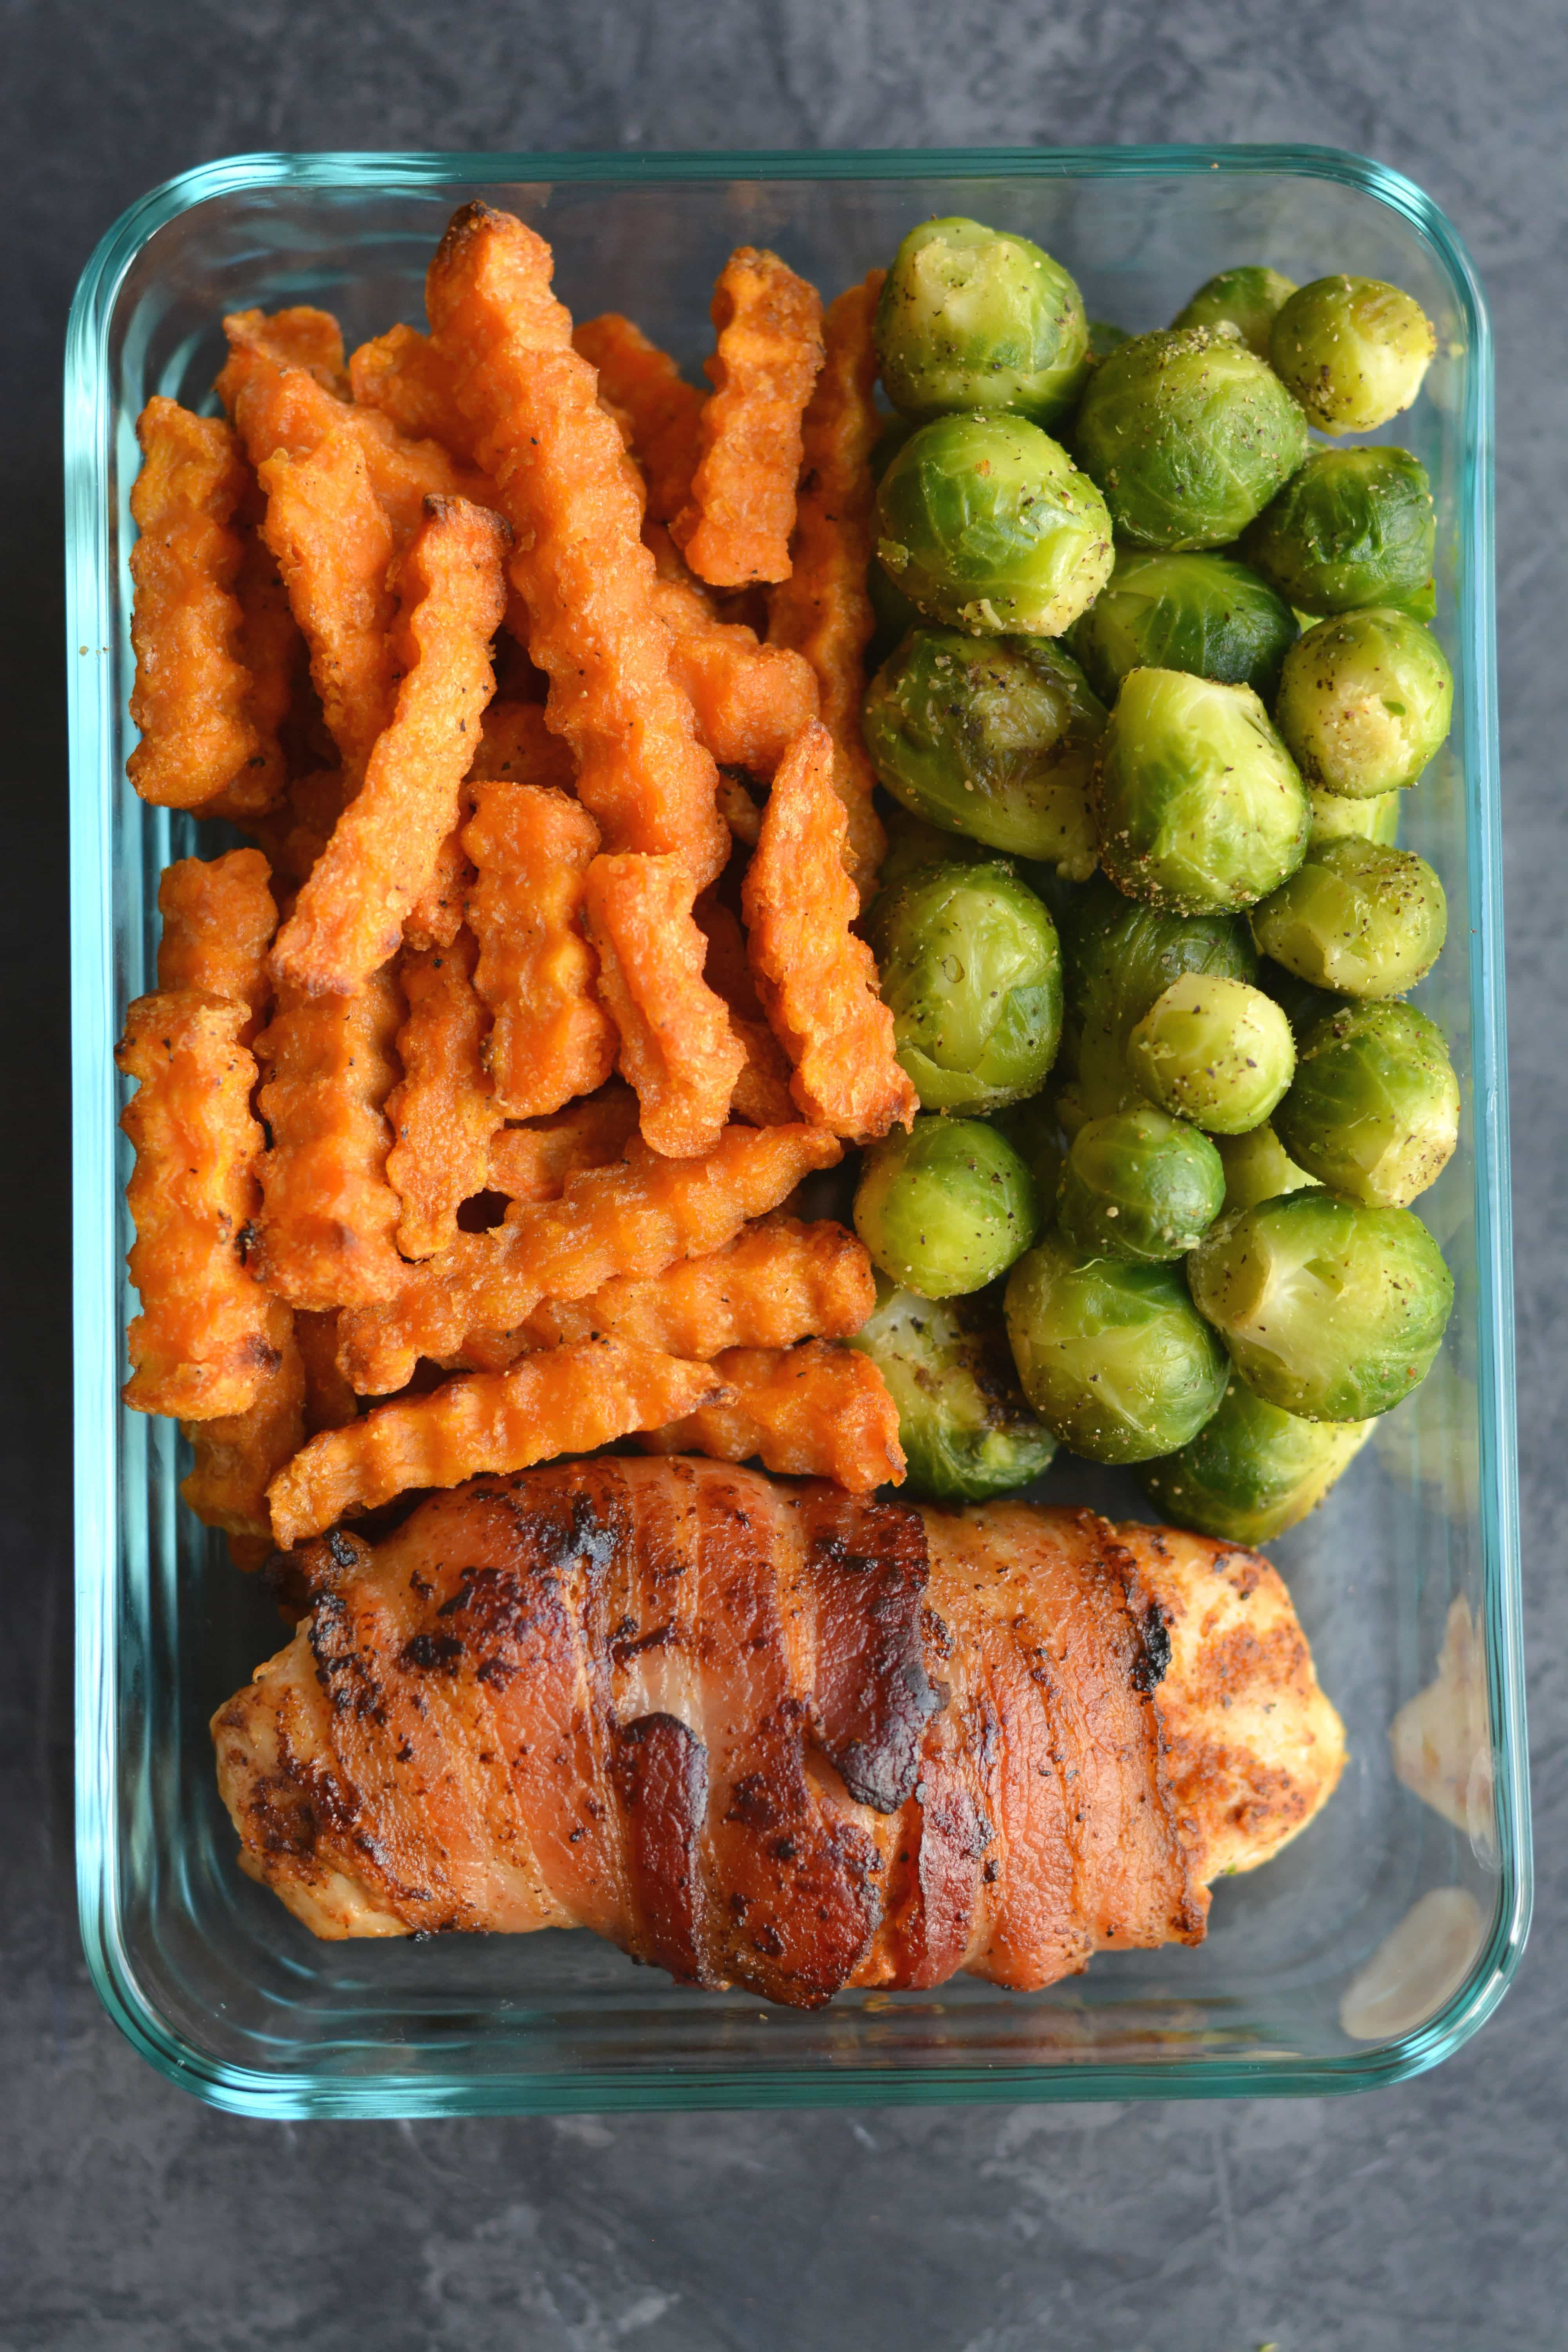 Bacon Wrapped Chicken Meal Prep Recipe